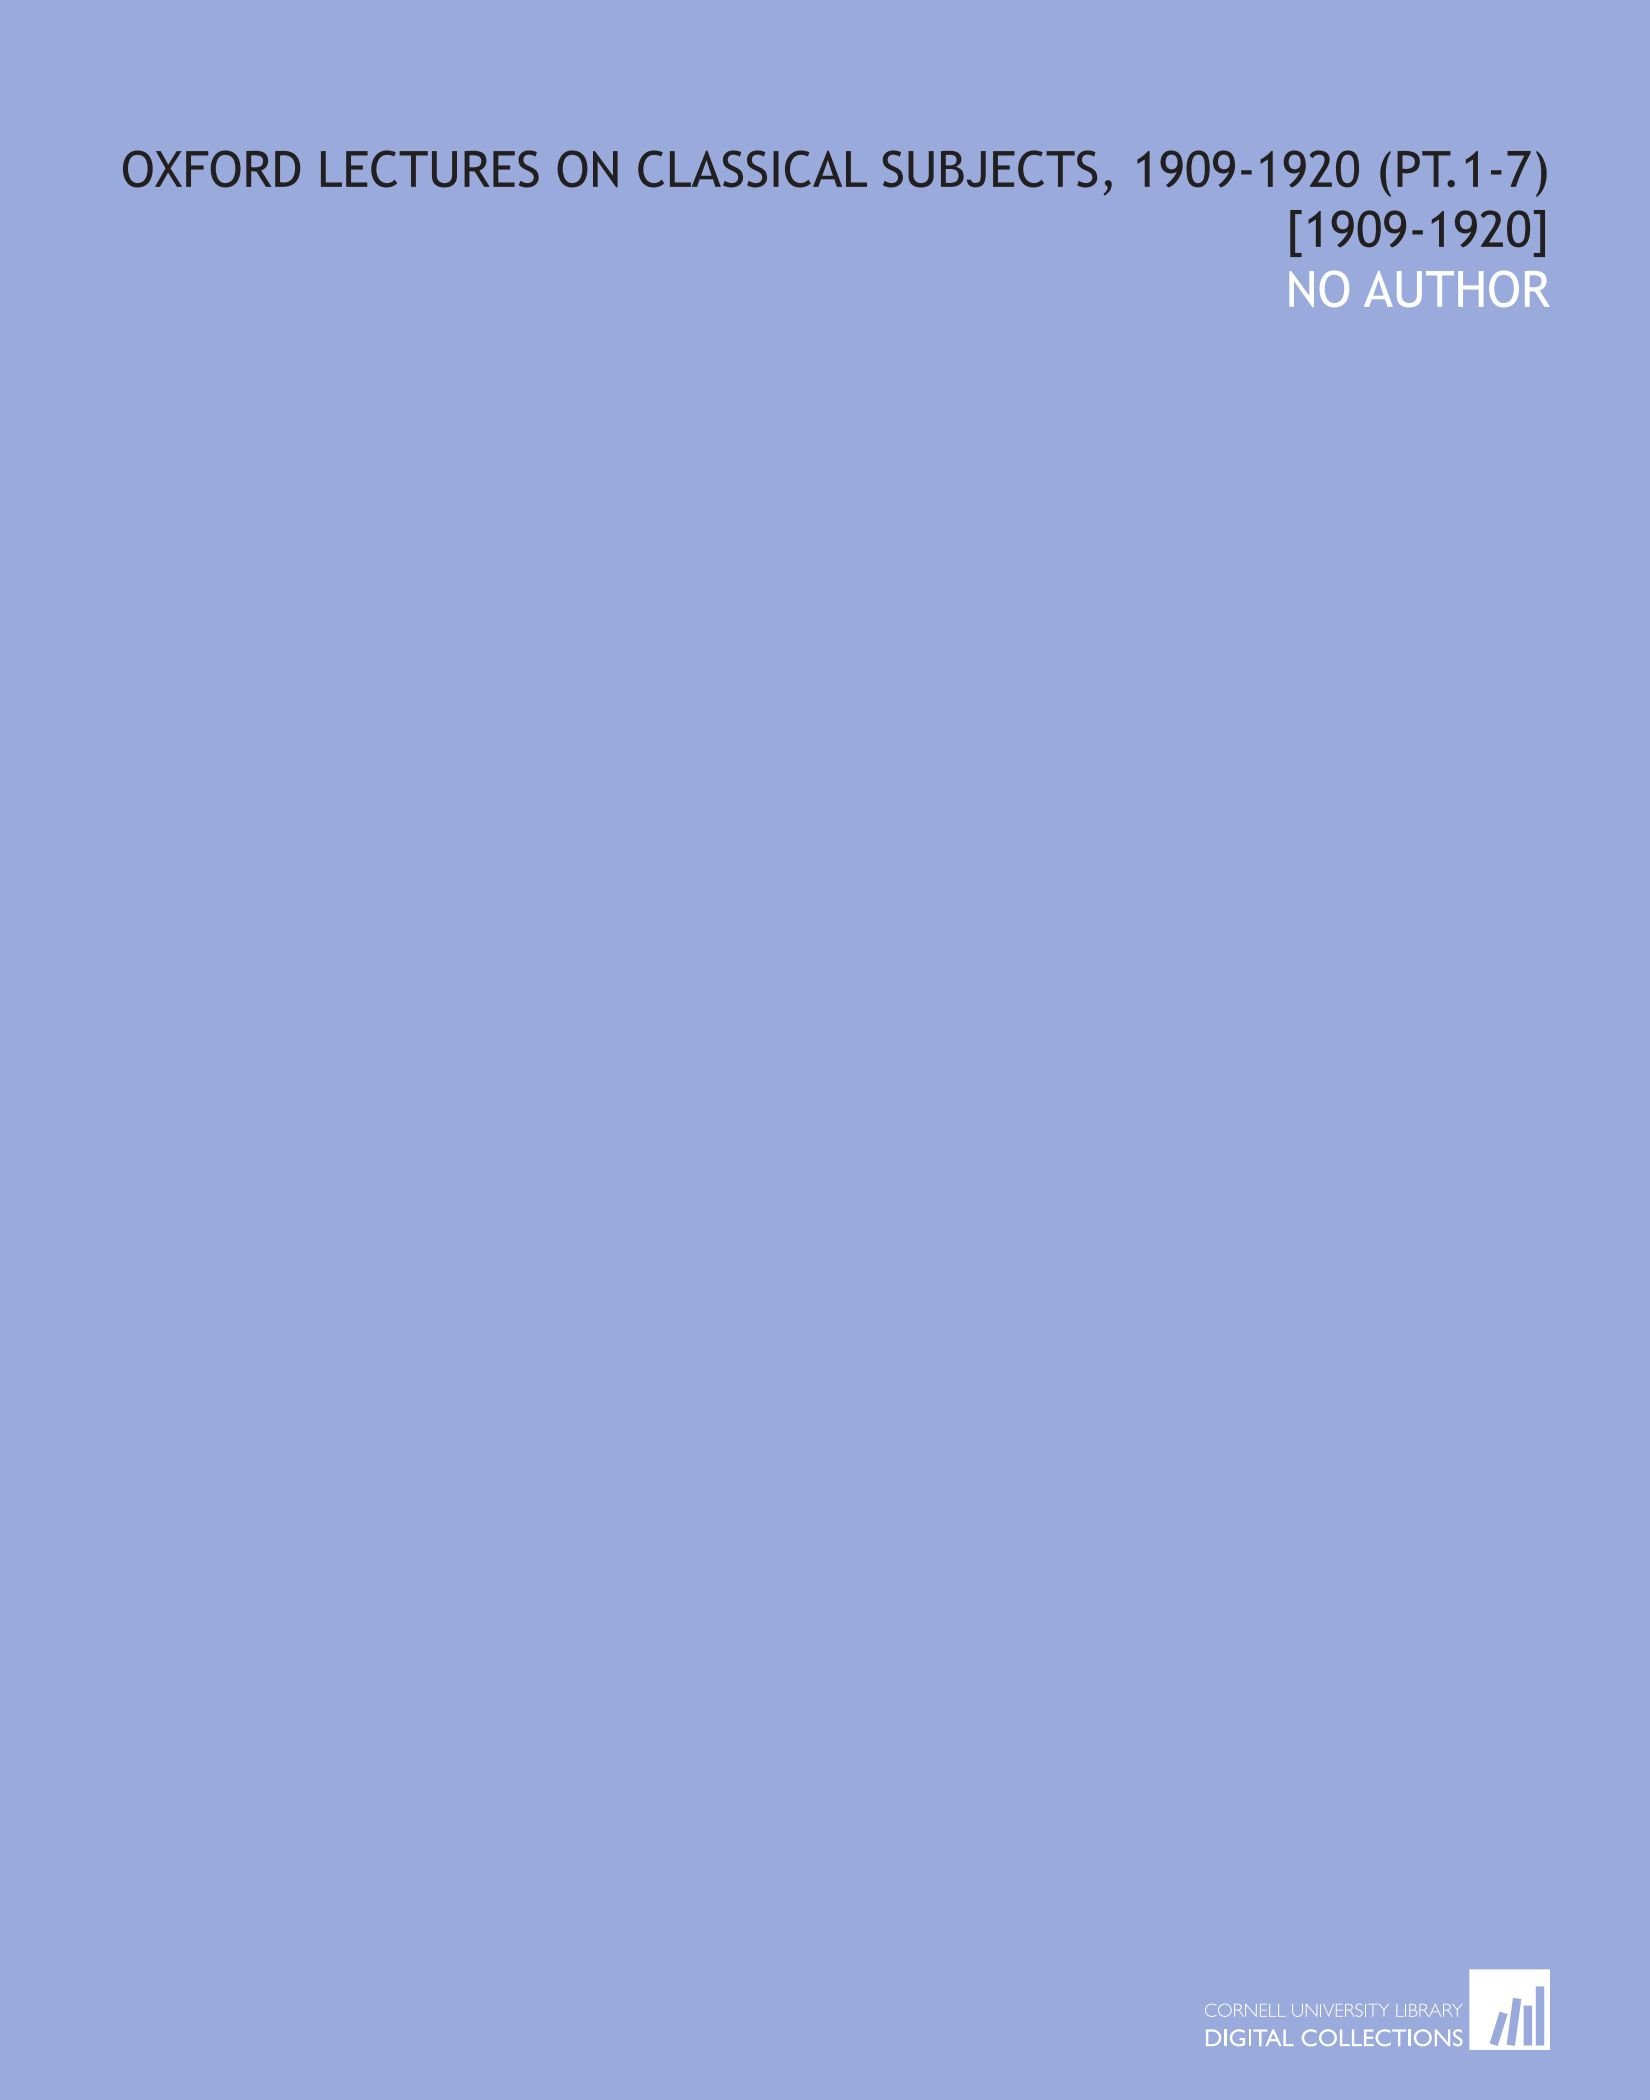 Download Oxford Lectures on Classical Subjects, 1909-1920 (Pt.1-7) [1909-1920] pdf